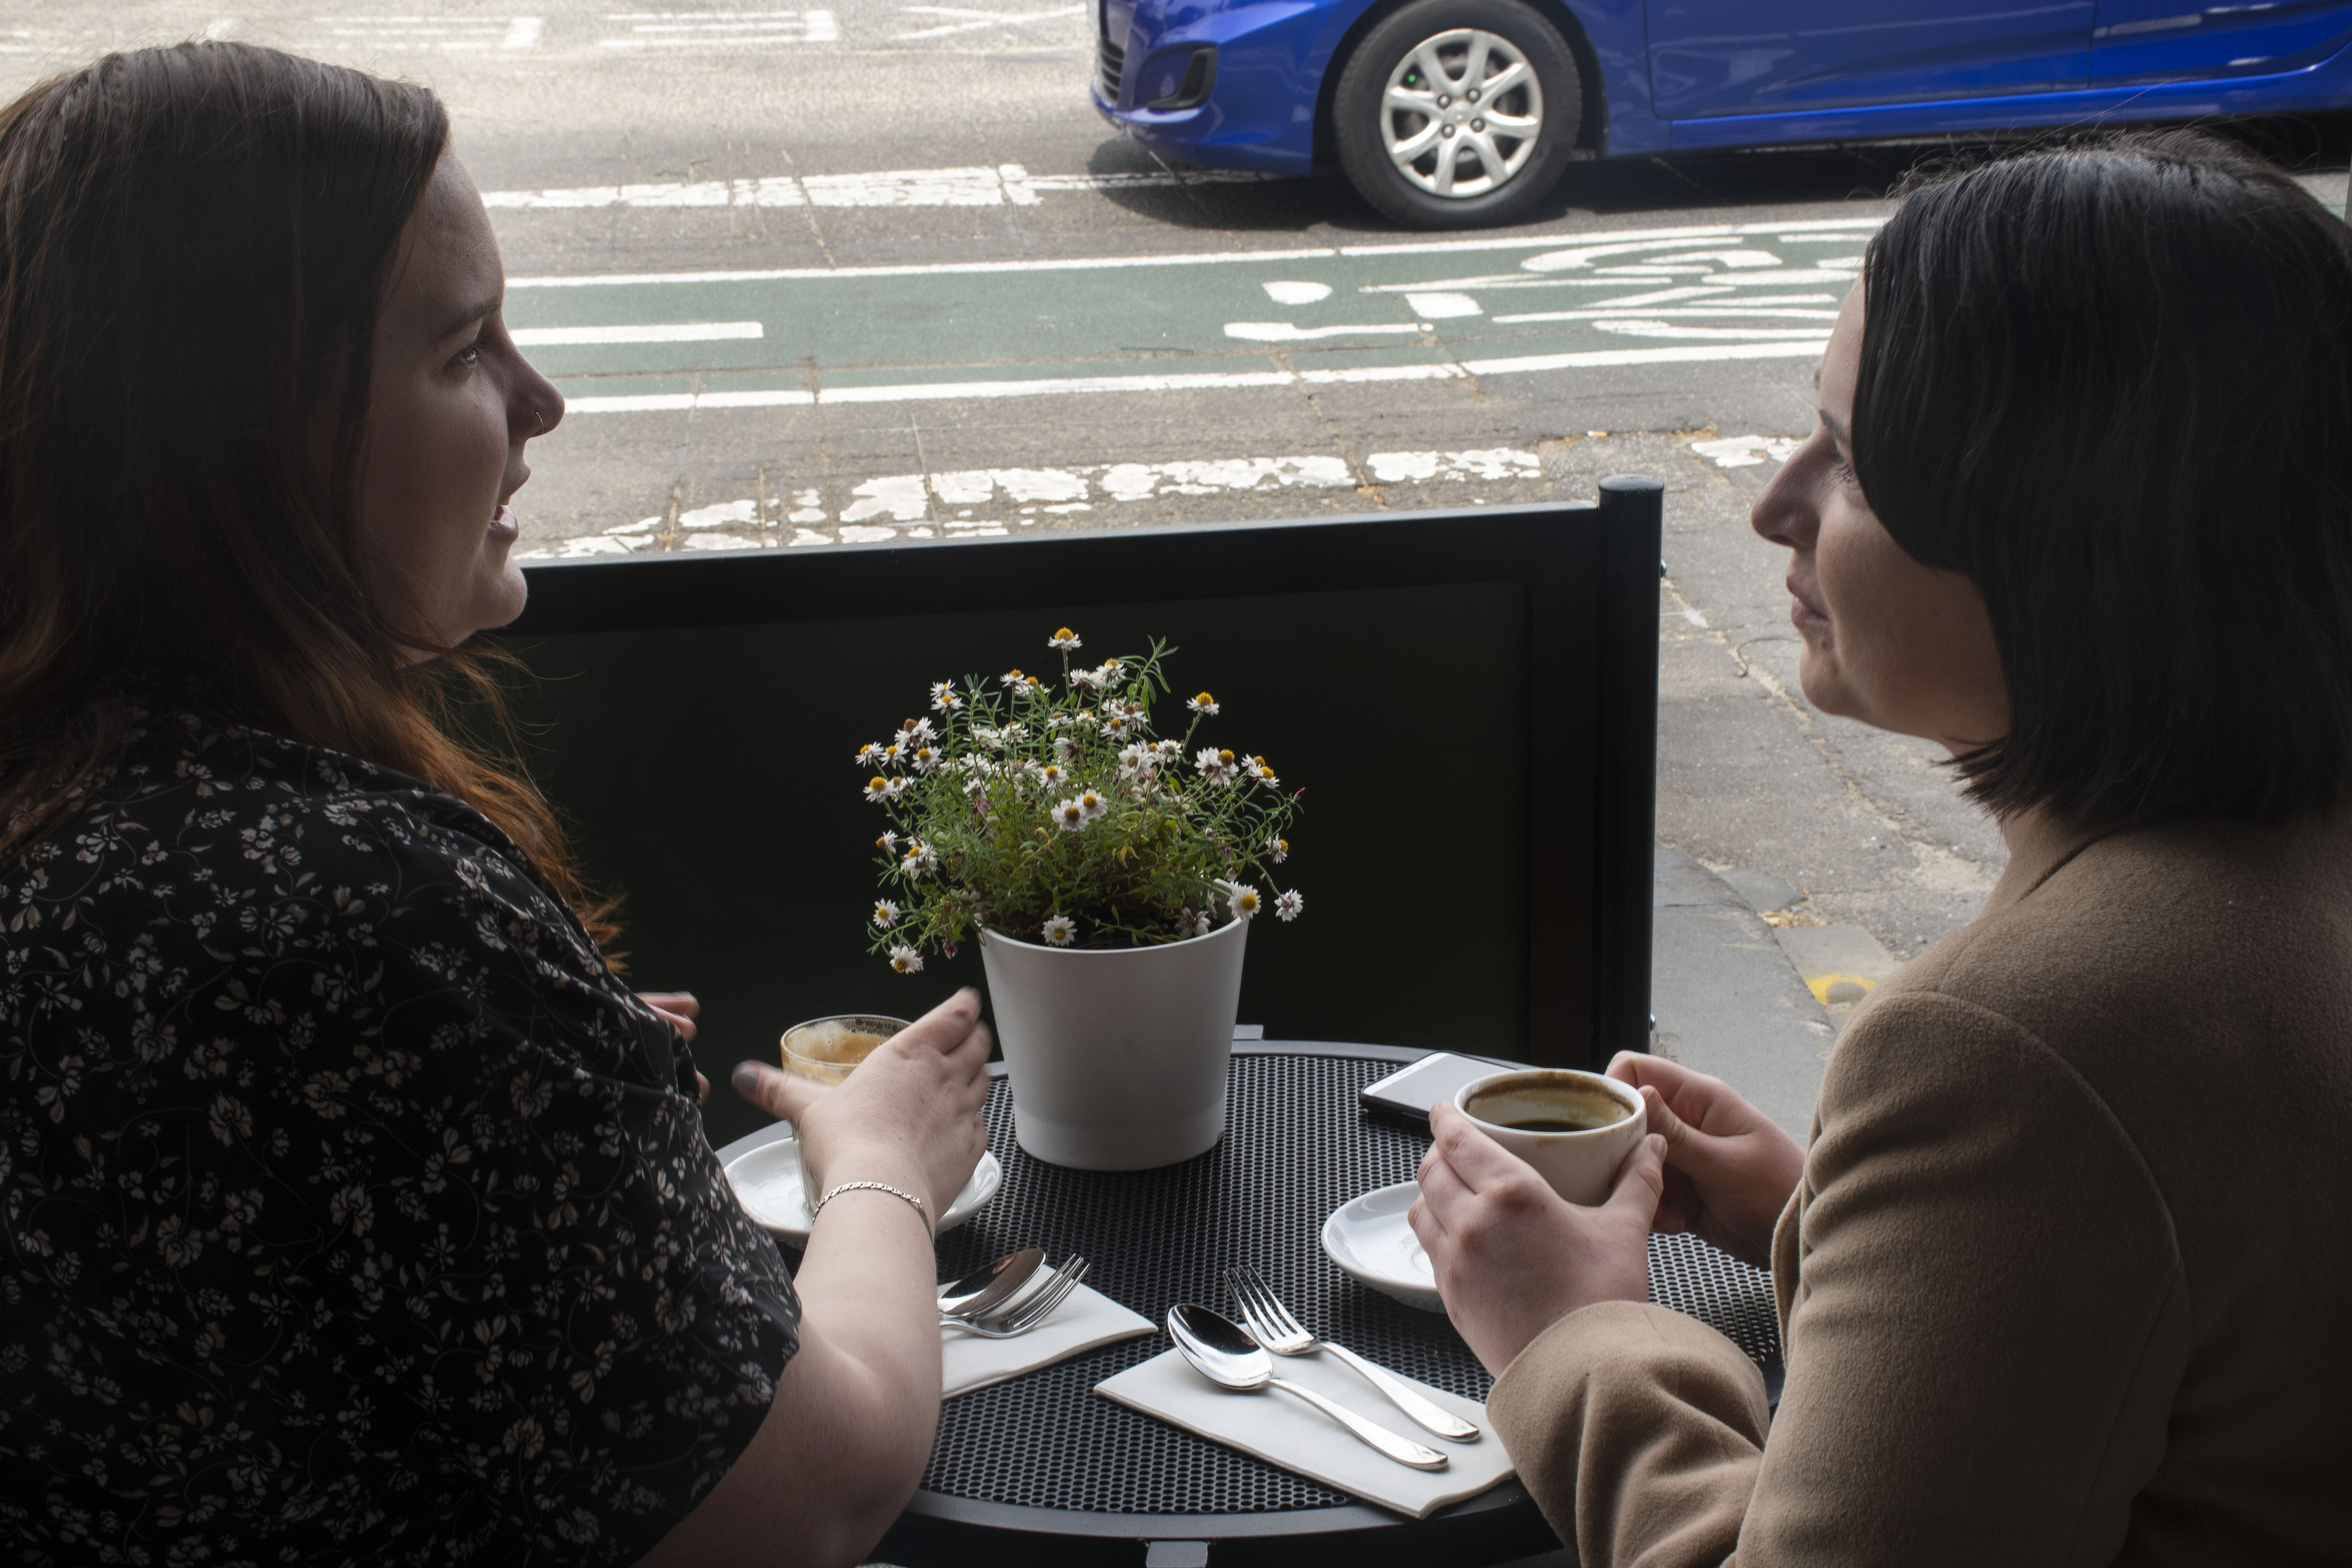 Nicole Earle (left) and Laura Ferris (right) enjoy a coffee on a Sunday morning. They both say that coffee is important for them, and they usually have at least one cup a day.   Laura also says that she usually has her morning coffee at home.